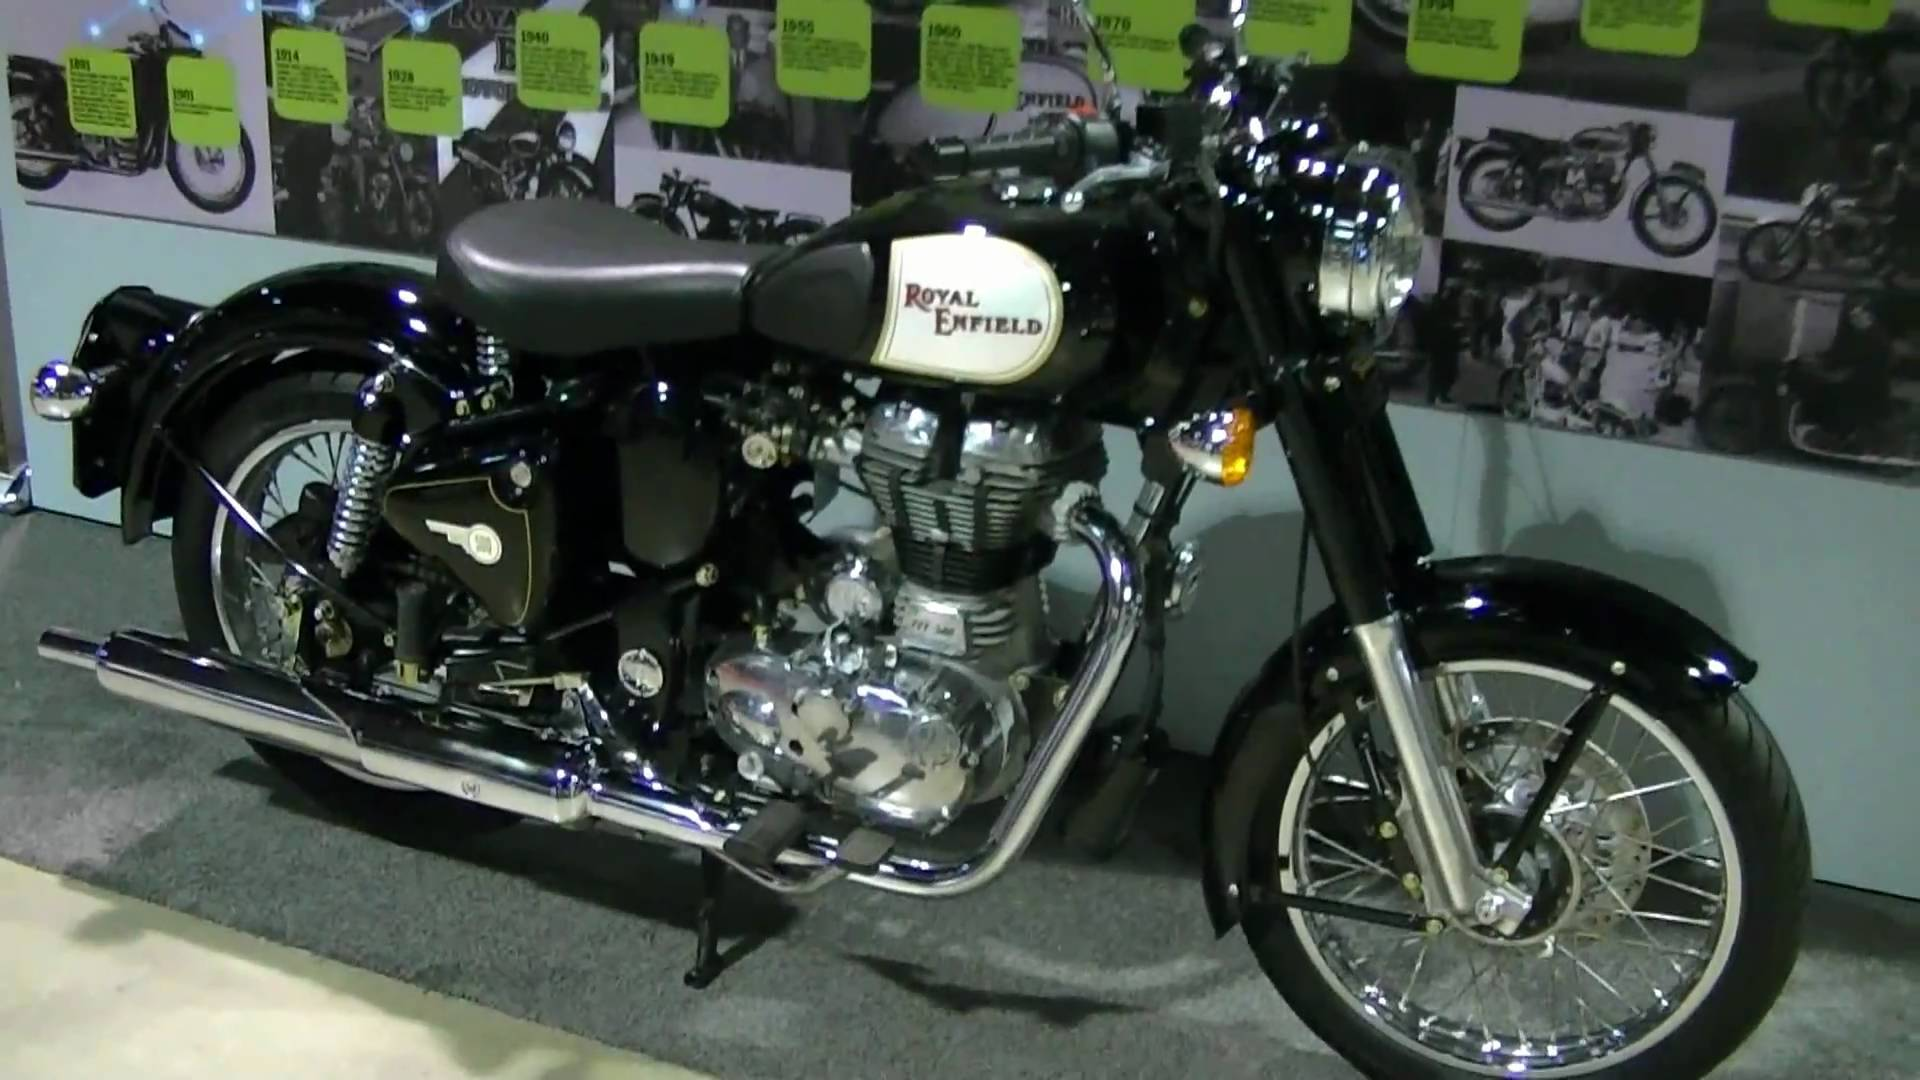 Royal Enfield Bullet 500 Classic 2011 images #123990